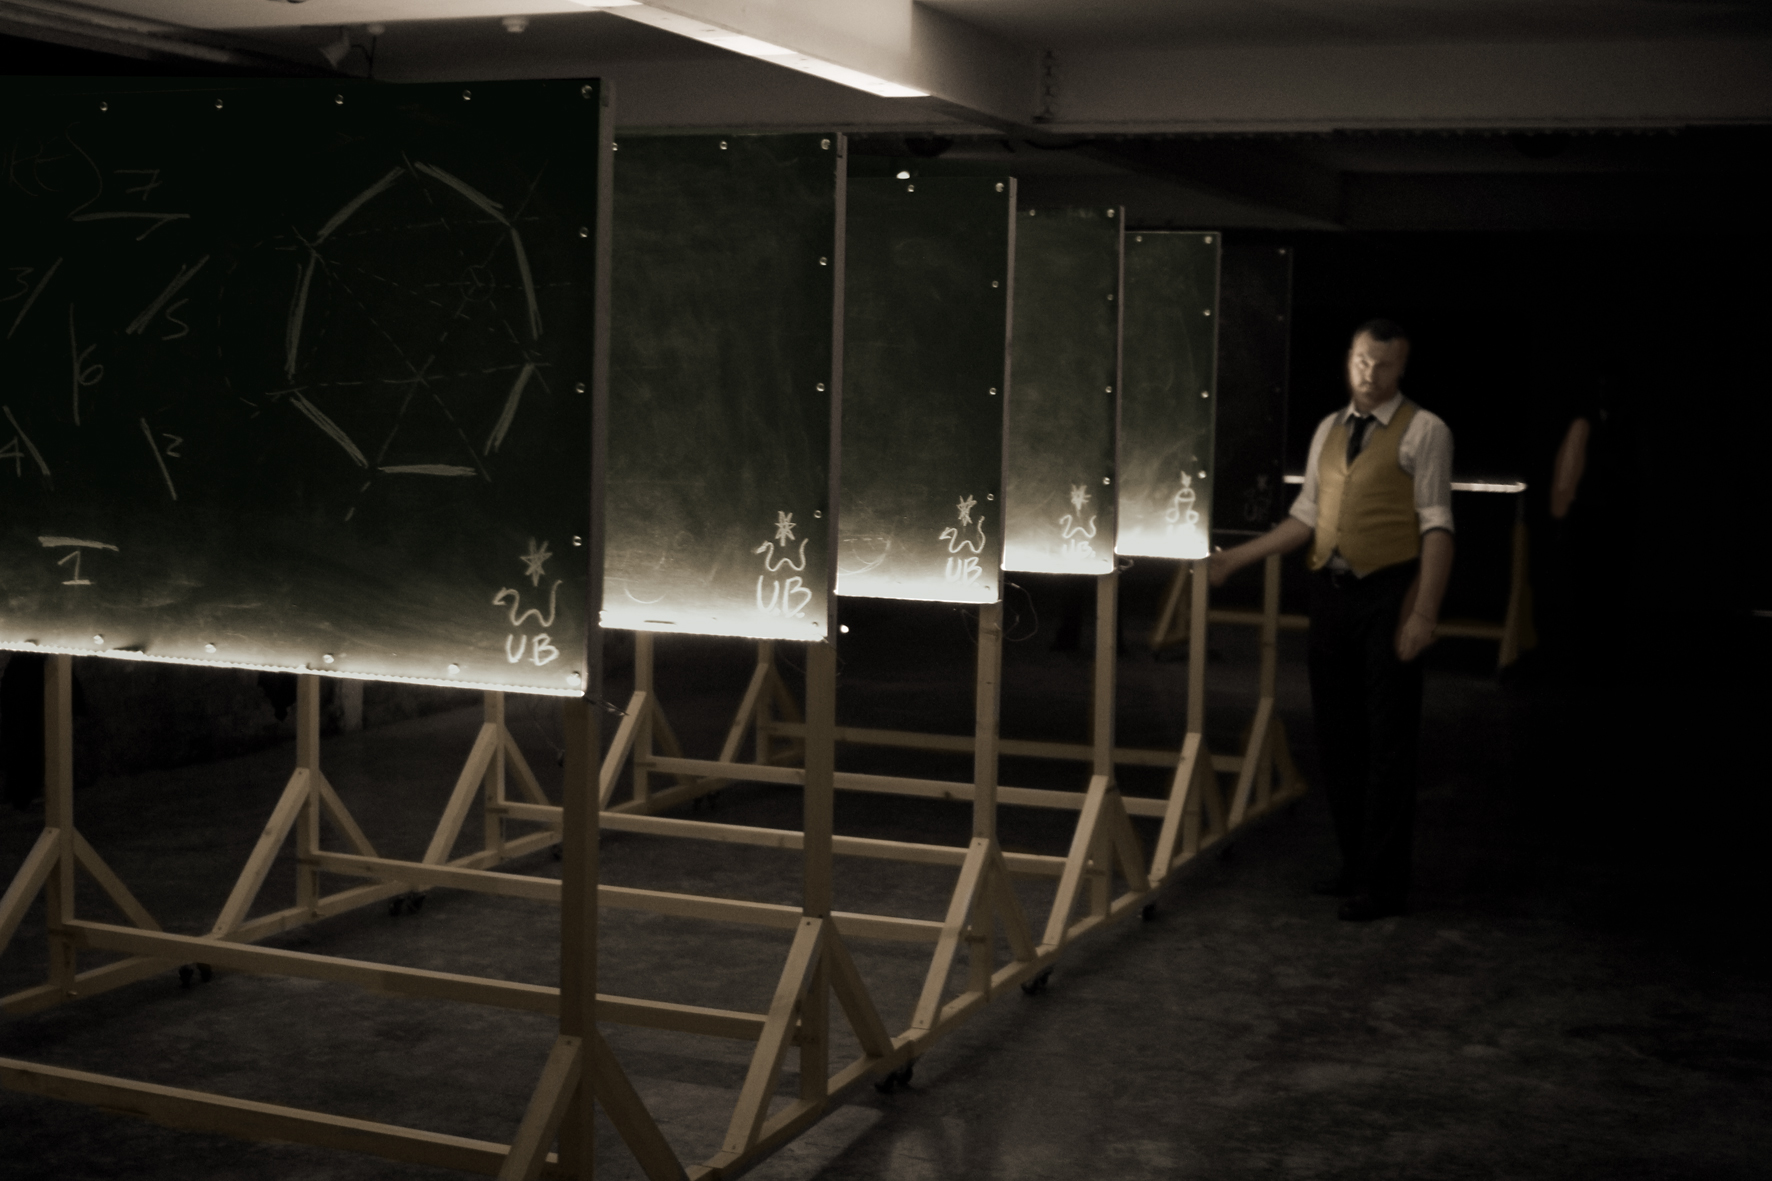 Ulysses Black, as Lecturer 1, reveals the presence of the linear sequence of blackboards within the first configuration. Performance at the Basement, Brighton 2013